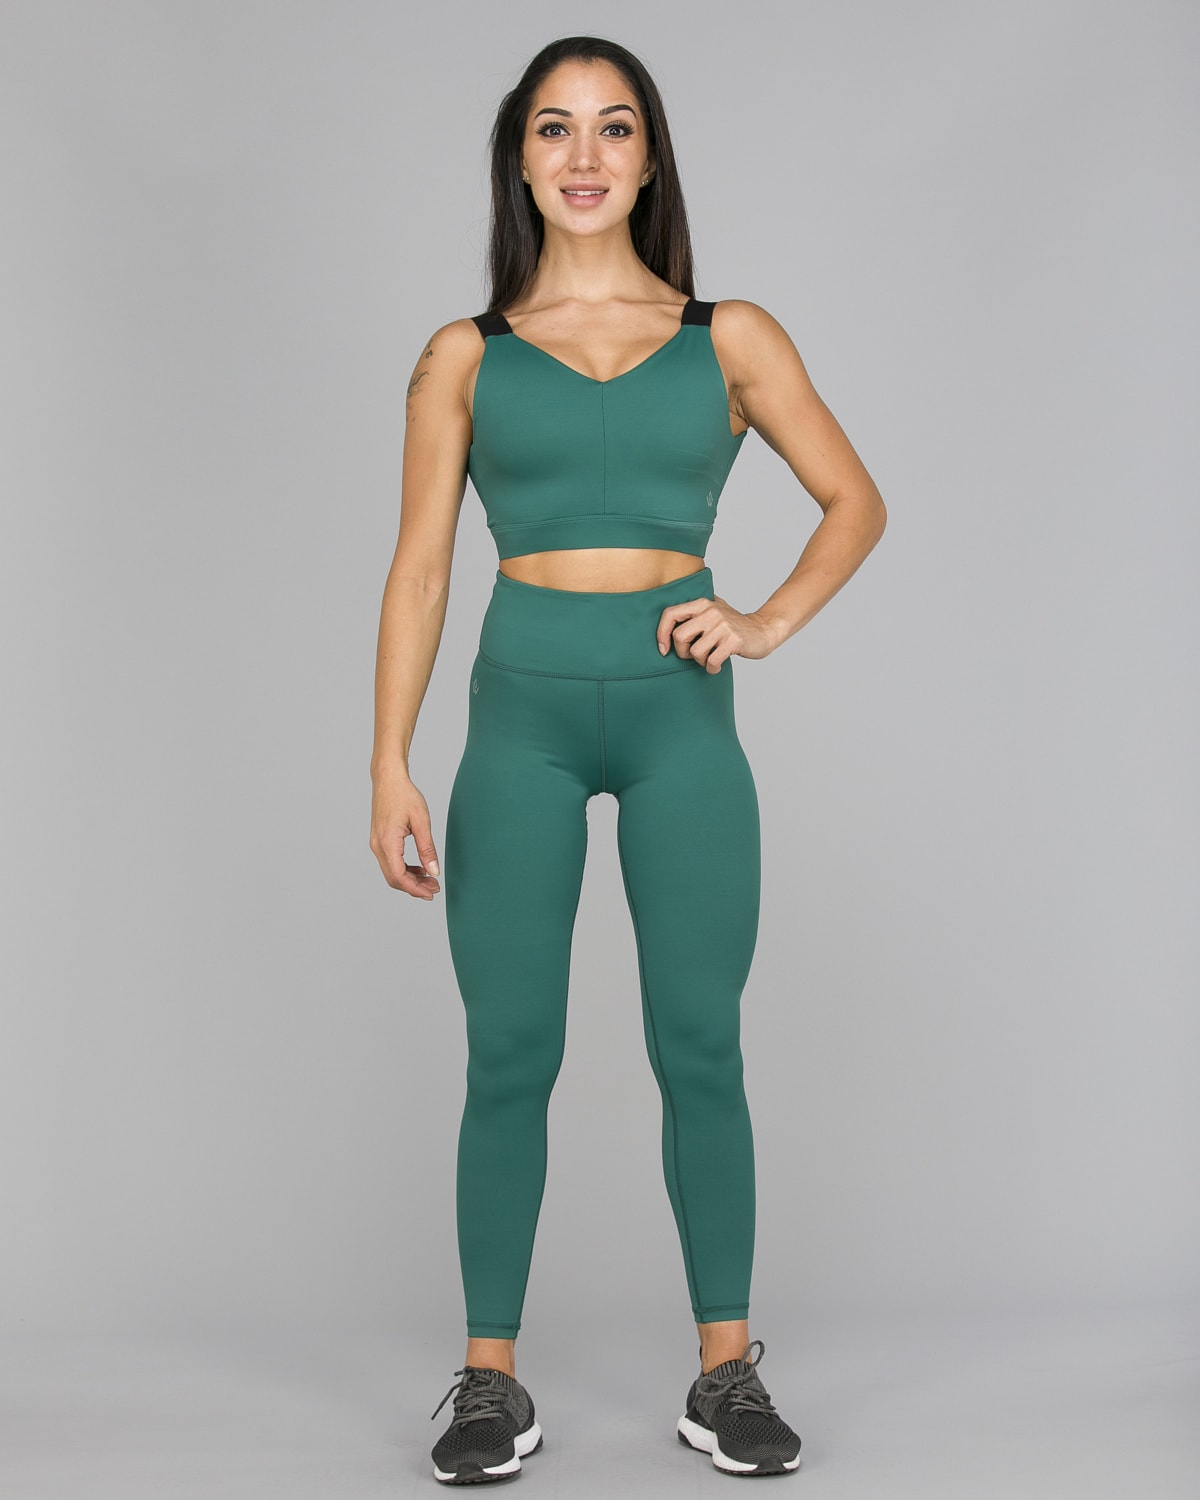 Workout Empire – With Confidence Shape Leggings – Emerald Green1